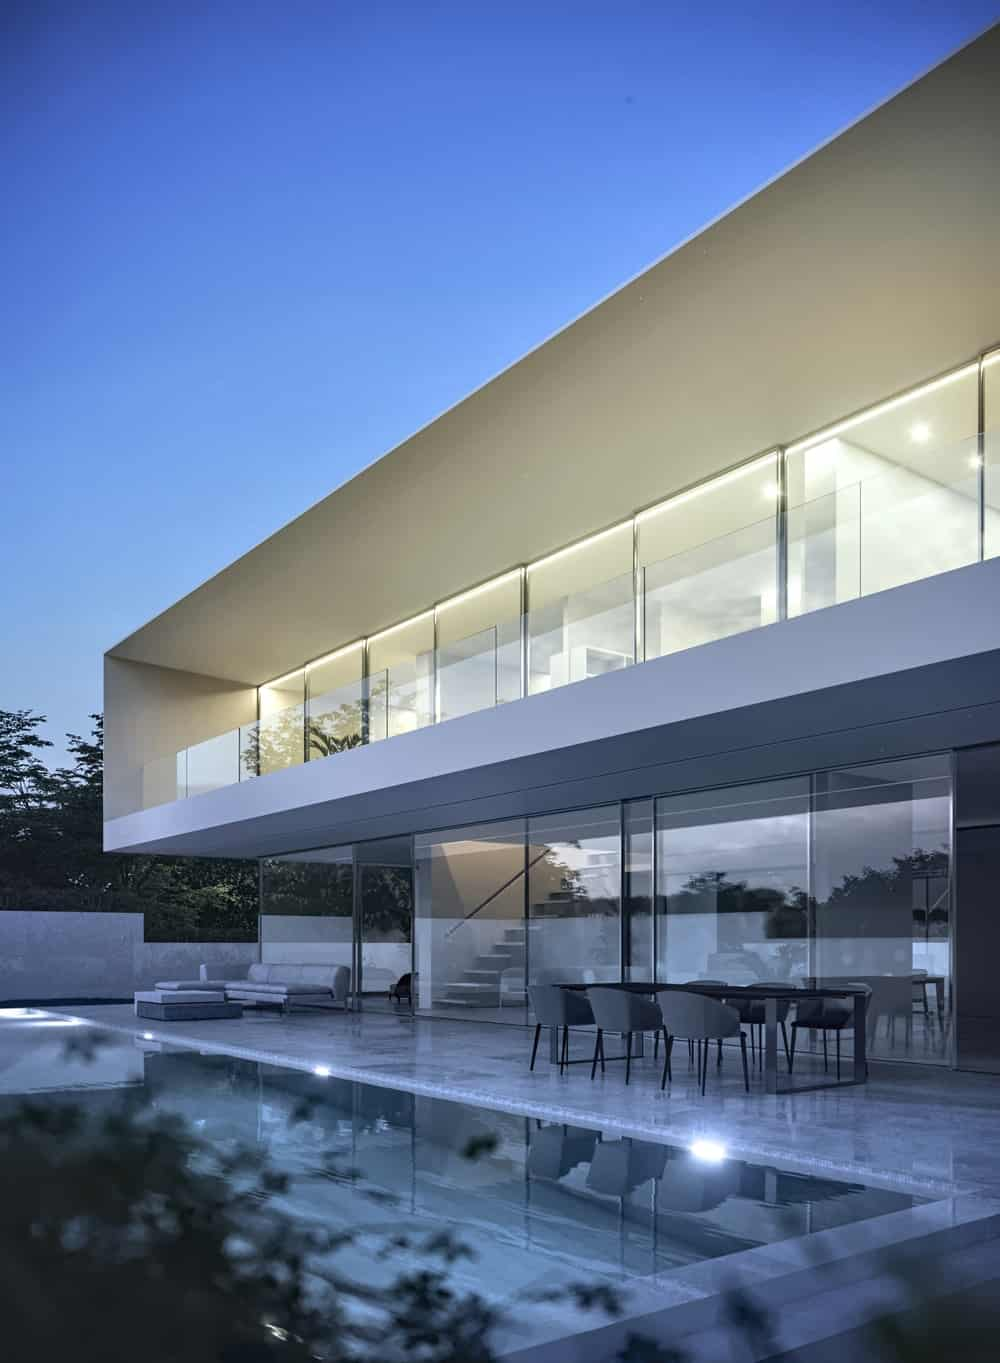 When the lights of the ground level are out, the glass walls of the house hides the interiors and acts as a mirror.